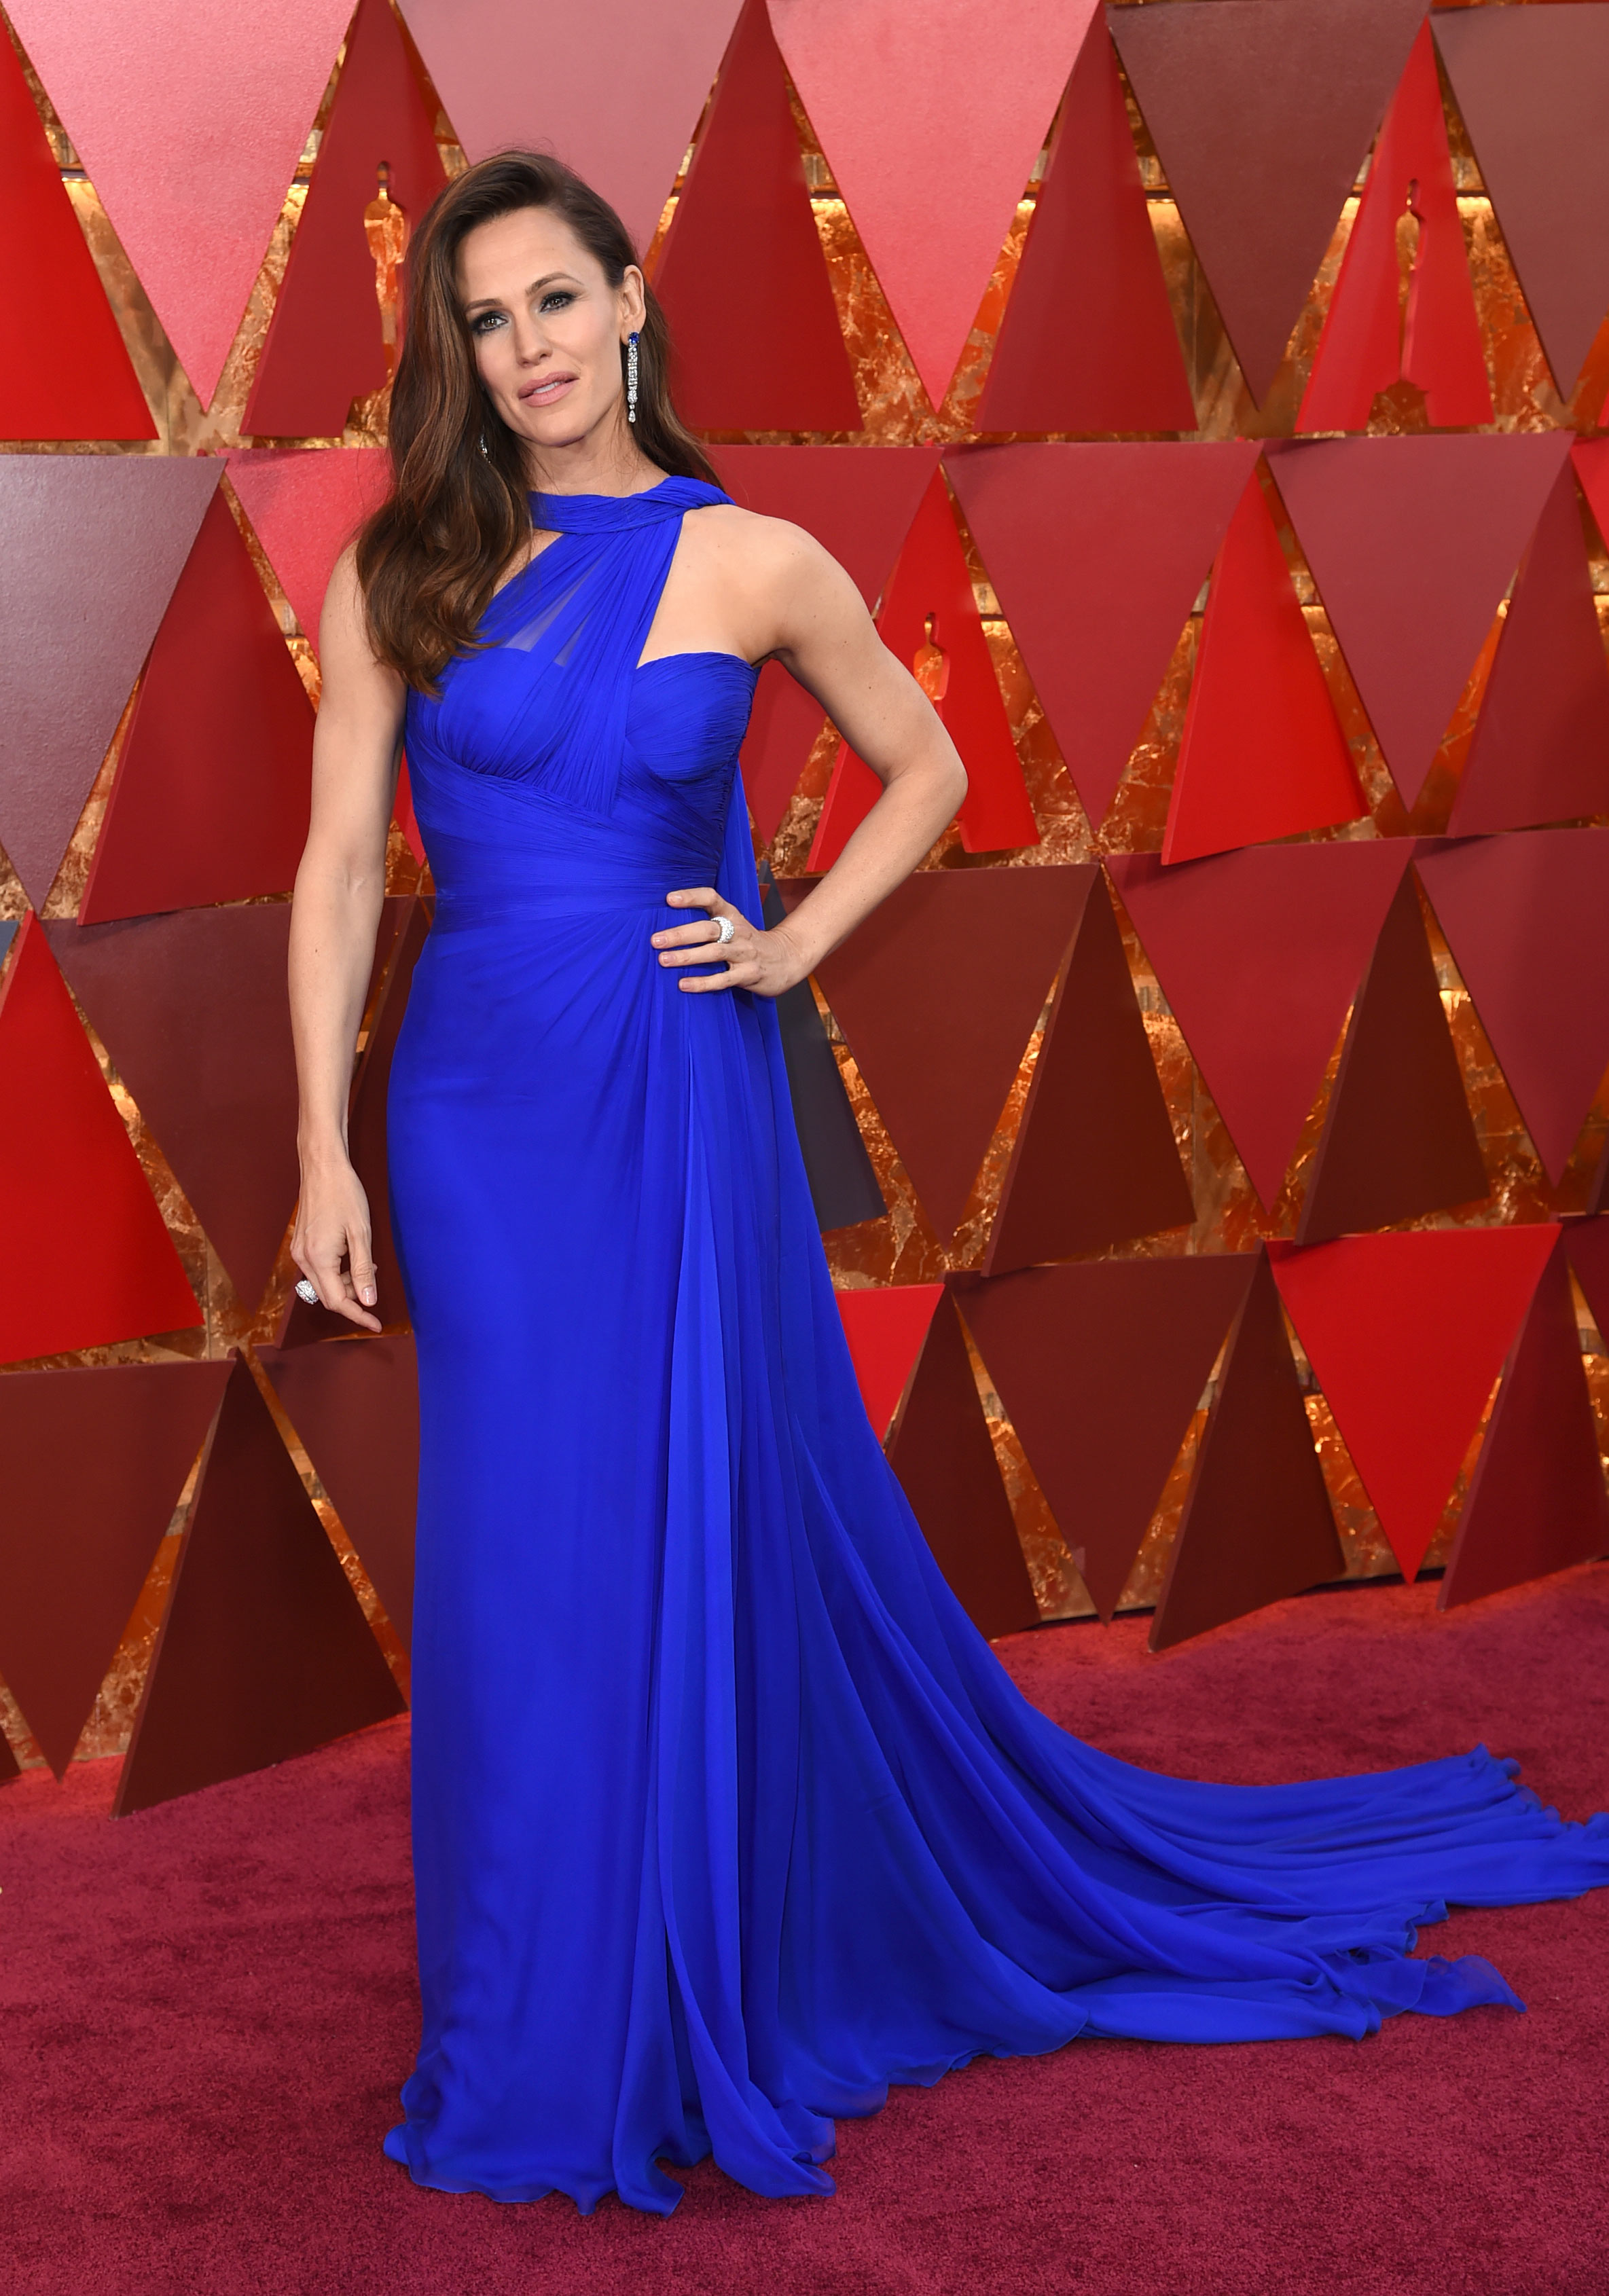 Jennifer Garner, en Versace, otra de las actrices que eligió el azul royal para desfilar por la alfombra roja de los Oscar 2018. (The Associated Press)